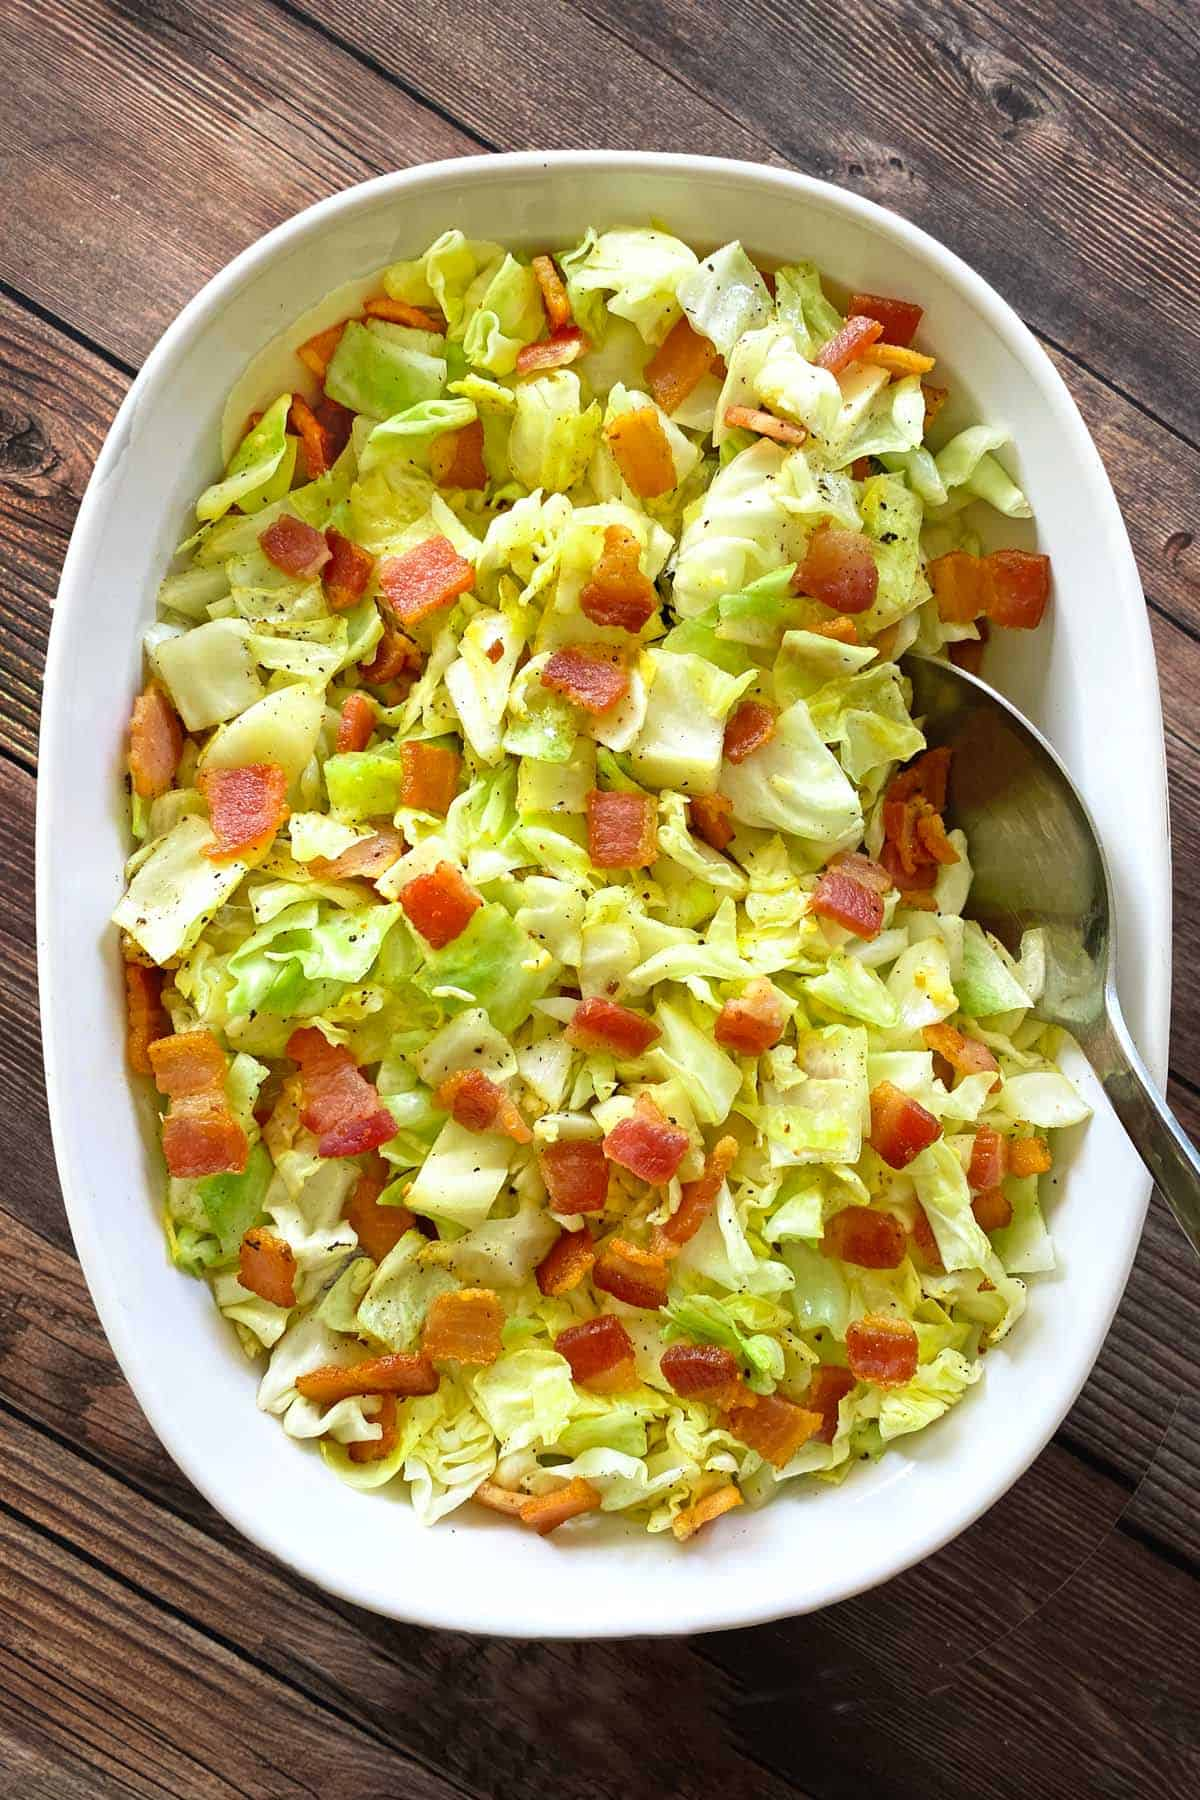 White oval serving dish filled with fried cabbage with bacon and garlic and a silver serving spoon.